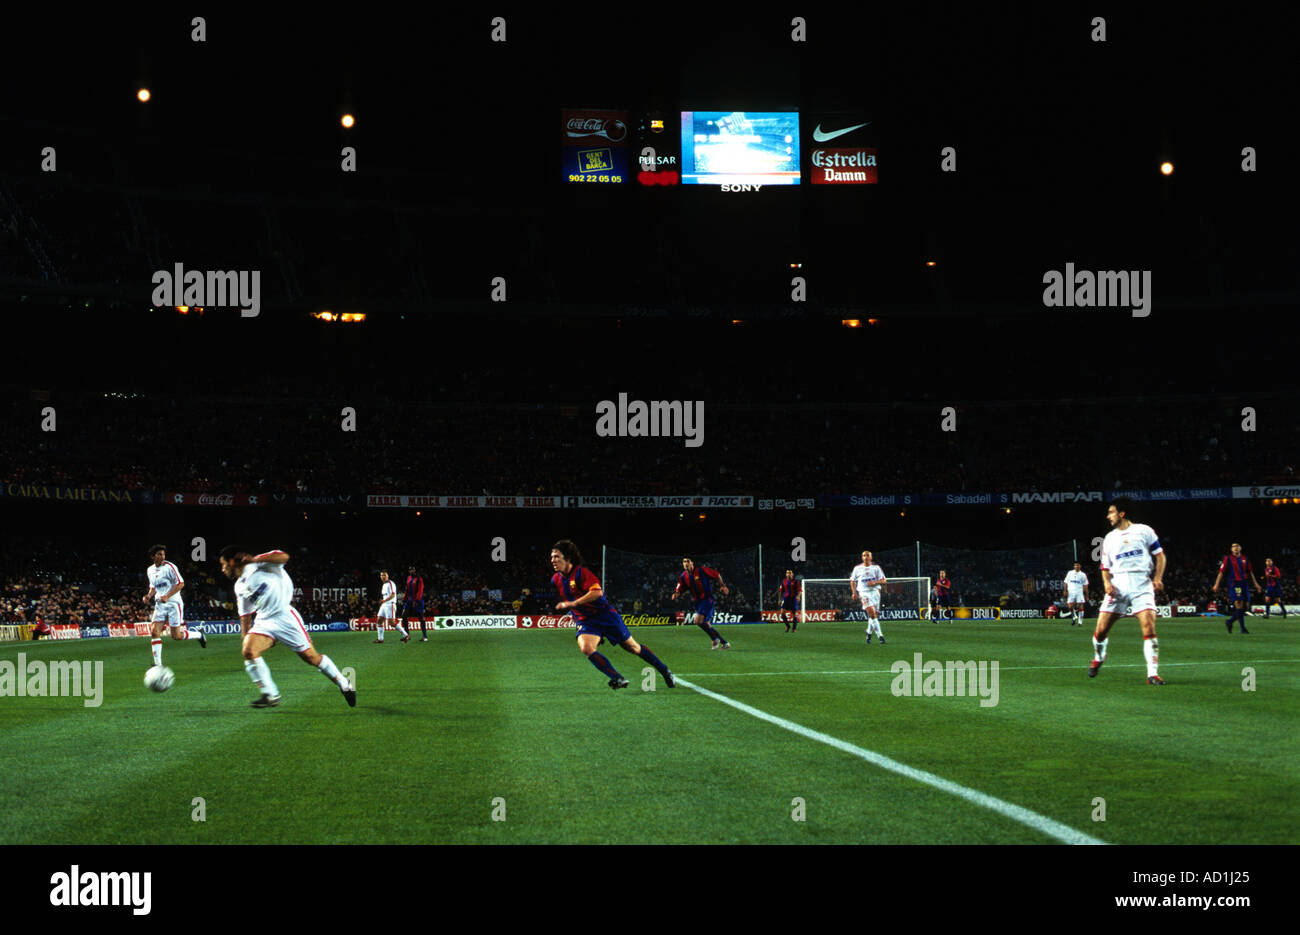 Barcelona Football Club playing at the Nou Camp stadium, Europe's largest footballing arena. - Stock Image